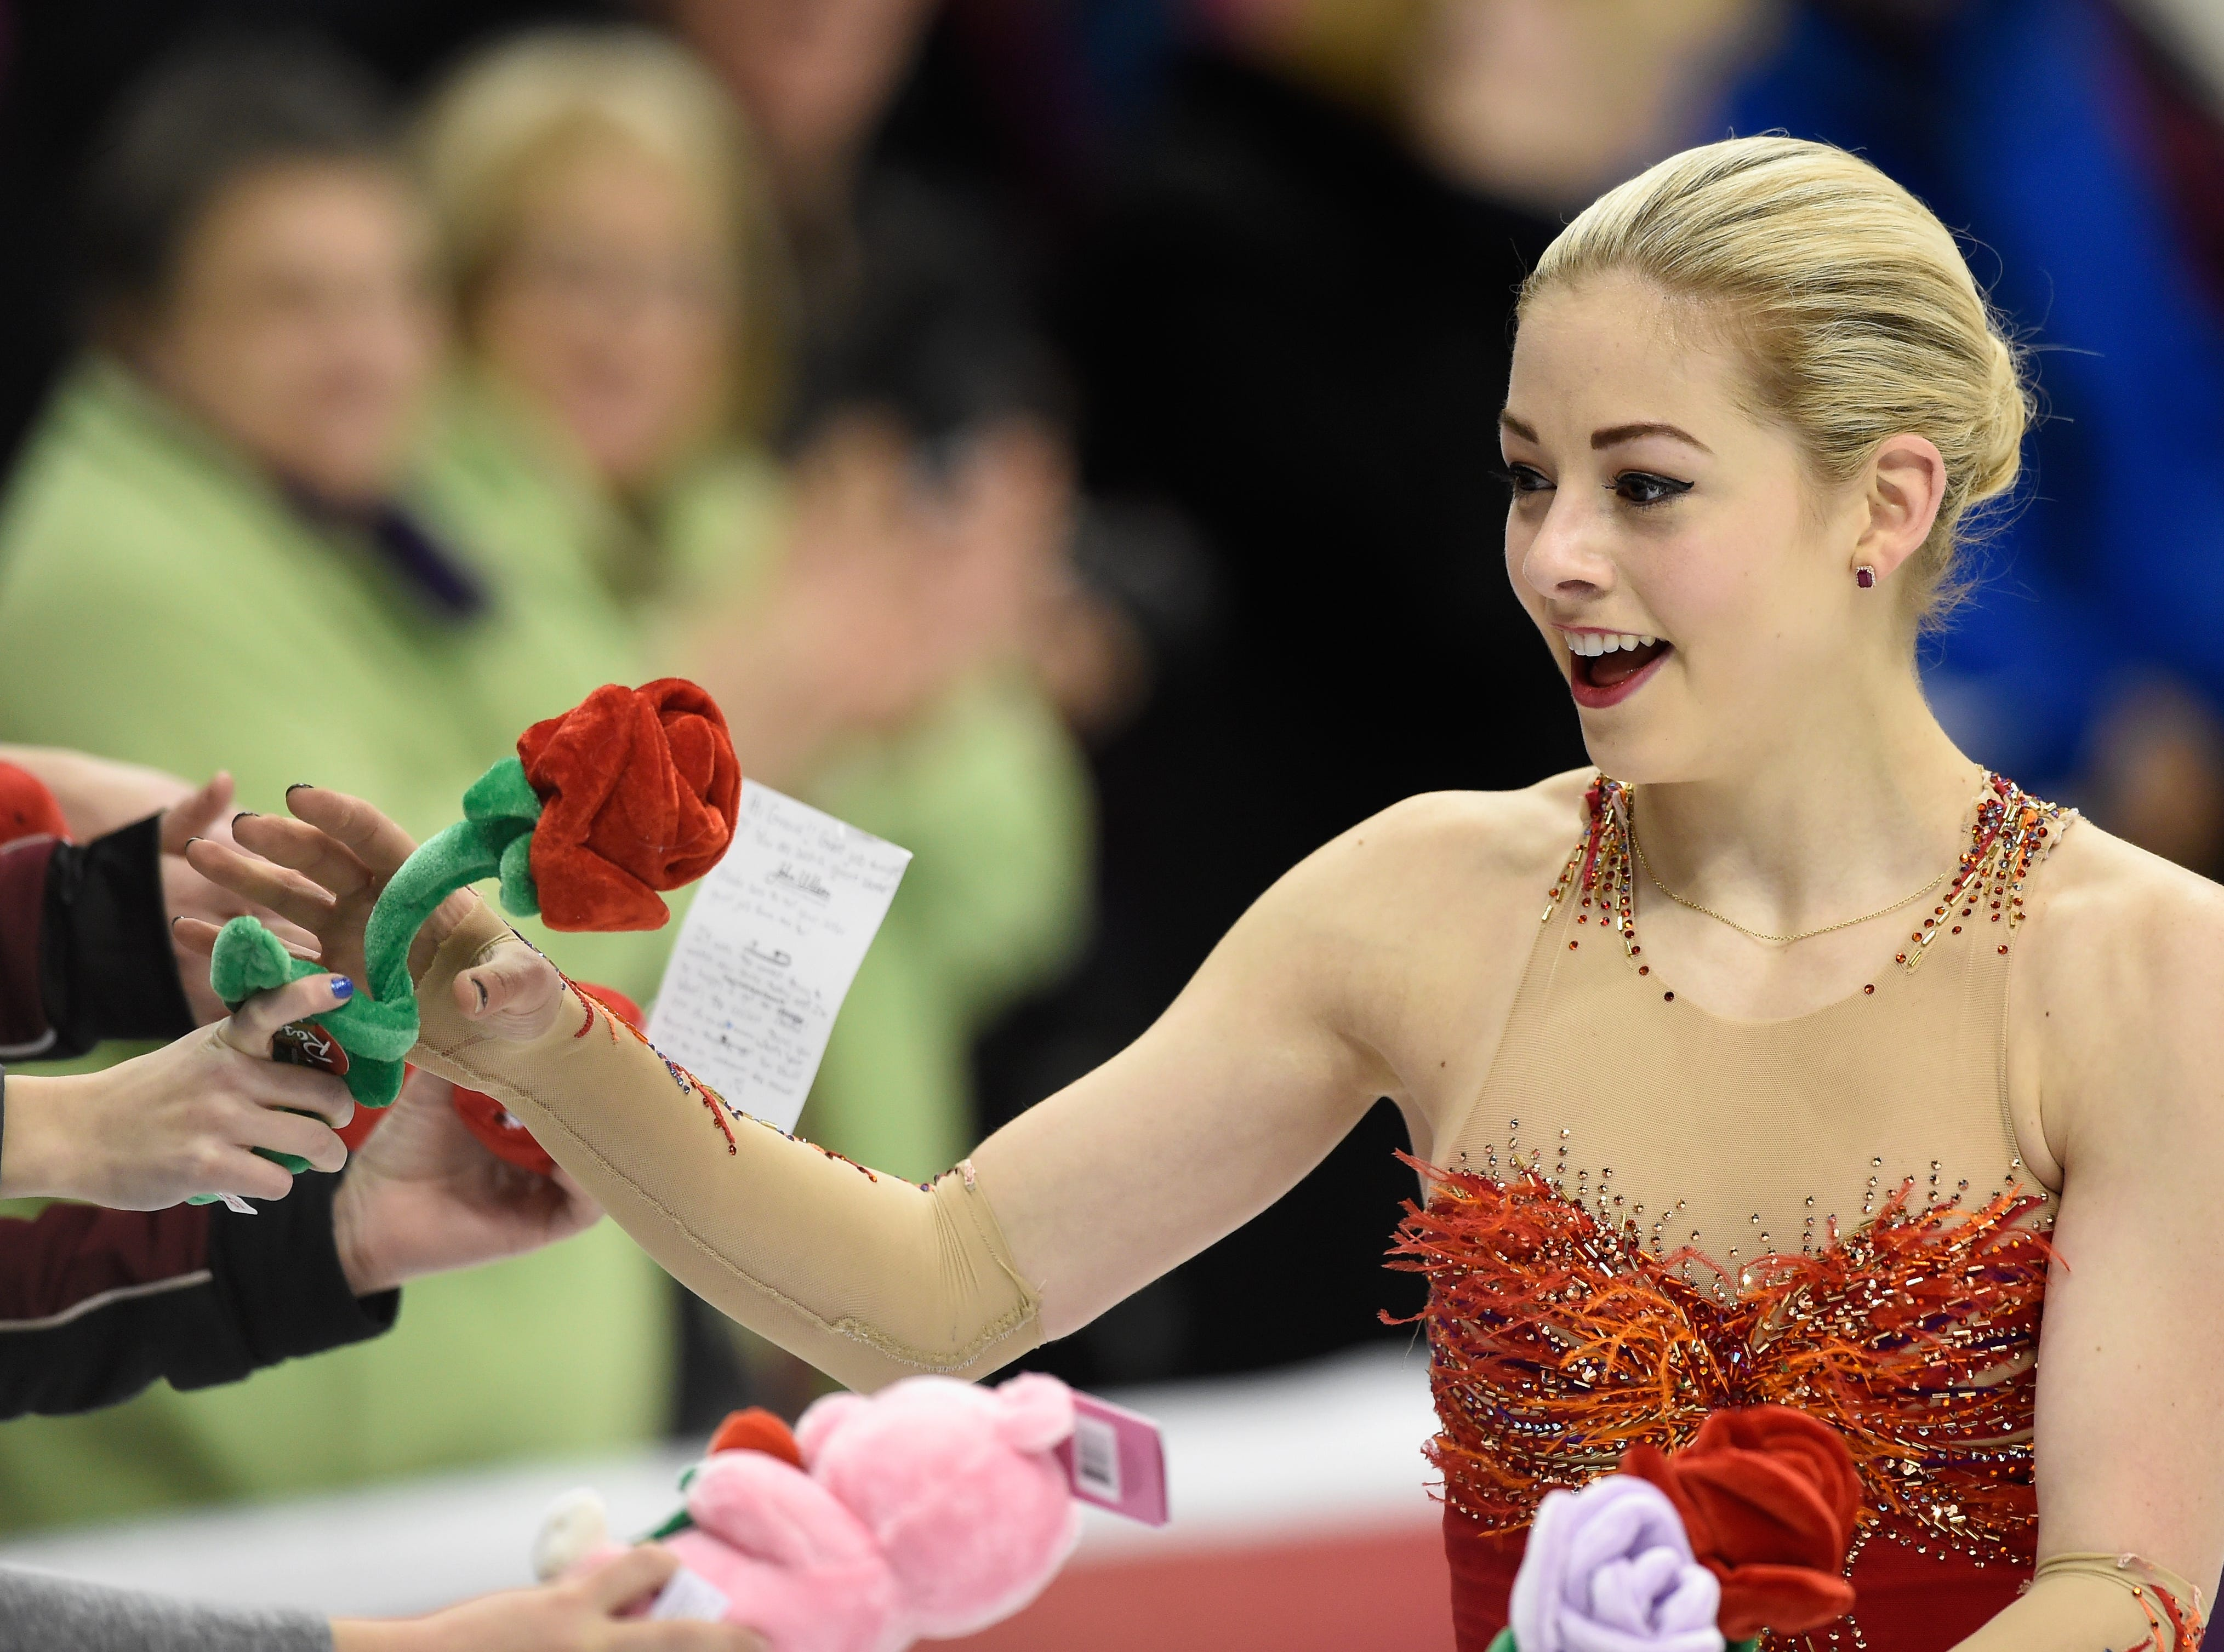 Gracie Gold won her third national title at the 2016 Prudential U.S. Figure Skating Championship at Xcel Energy Center in St Paul.